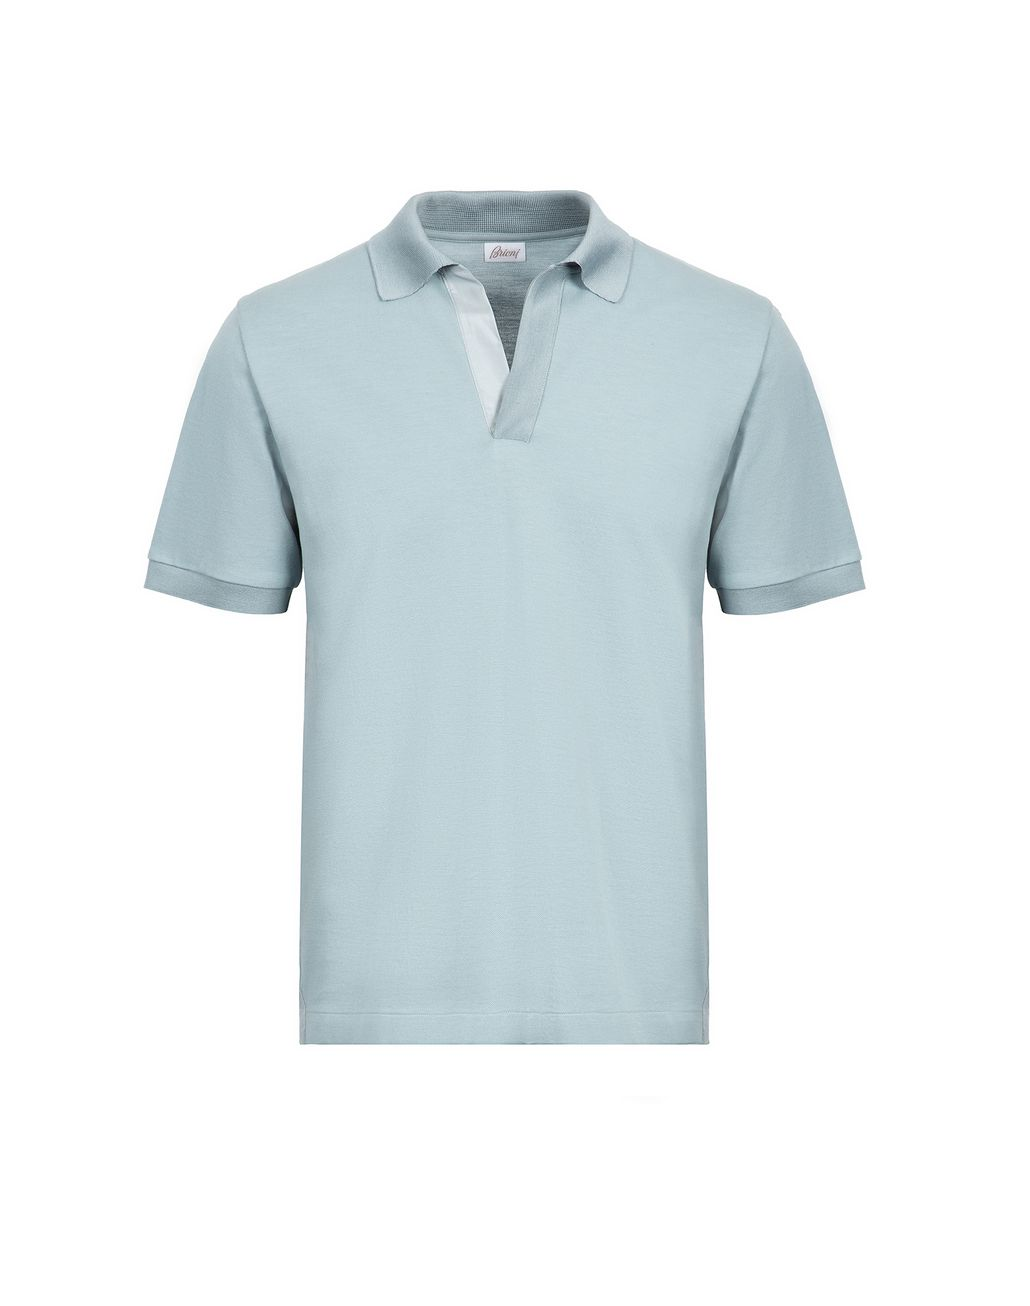 BRIONI Polo Azzurra Senza Bottoni in Piquet T-Shirt & Polo [*** pickupInStoreShippingNotGuaranteed_info ***] f